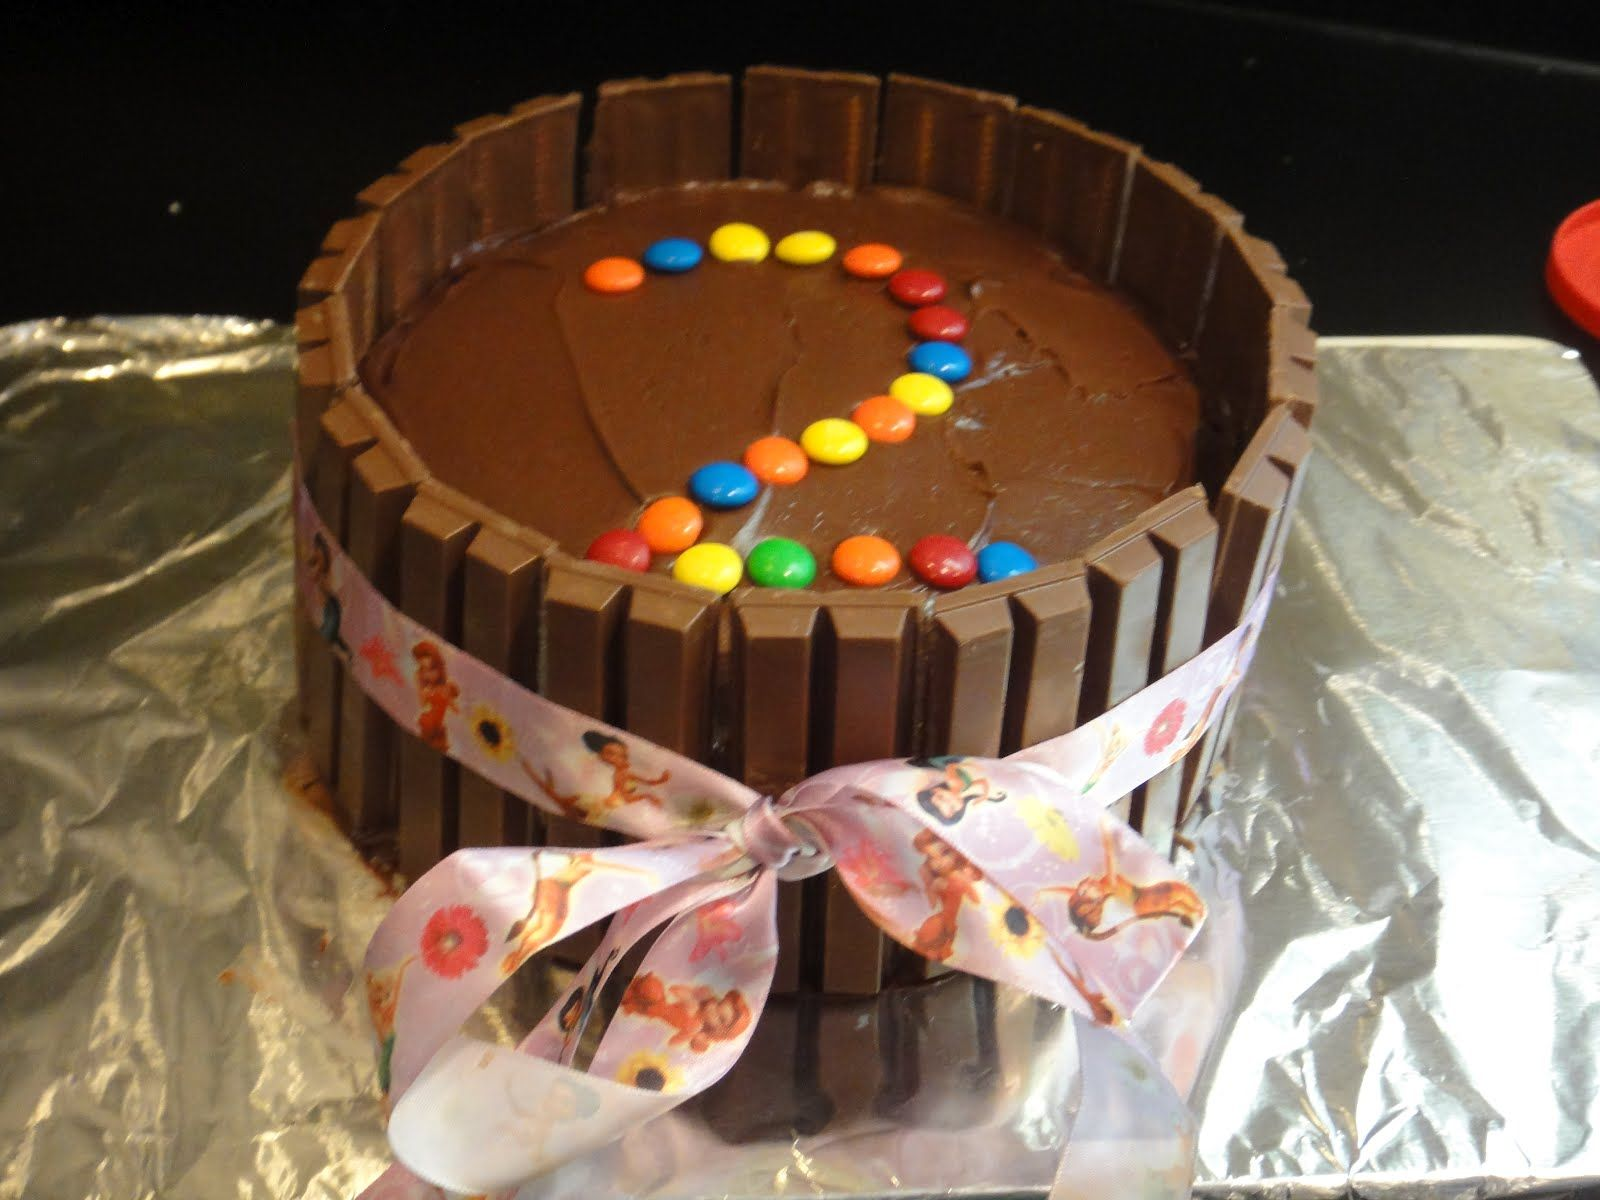 Kit-kat cake I made from Pinterest recipe